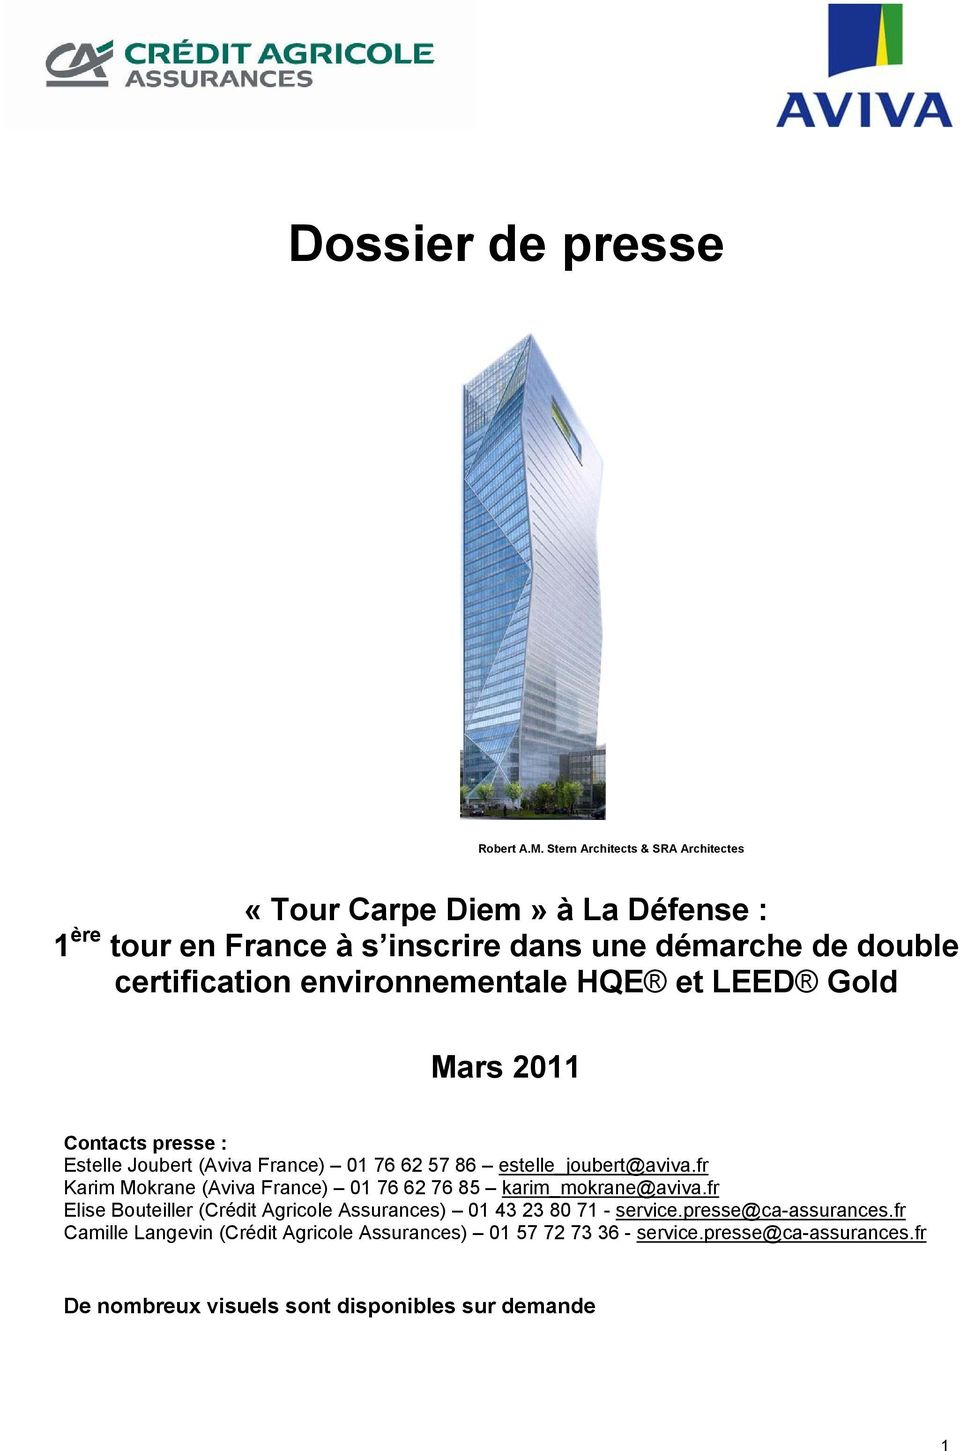 environnementale HQE et LEED Gold Mars 2011 Contacts presse : Estelle Joubert (Aviva France) 01 76 62 57 86 estelle_joubert@aviva.